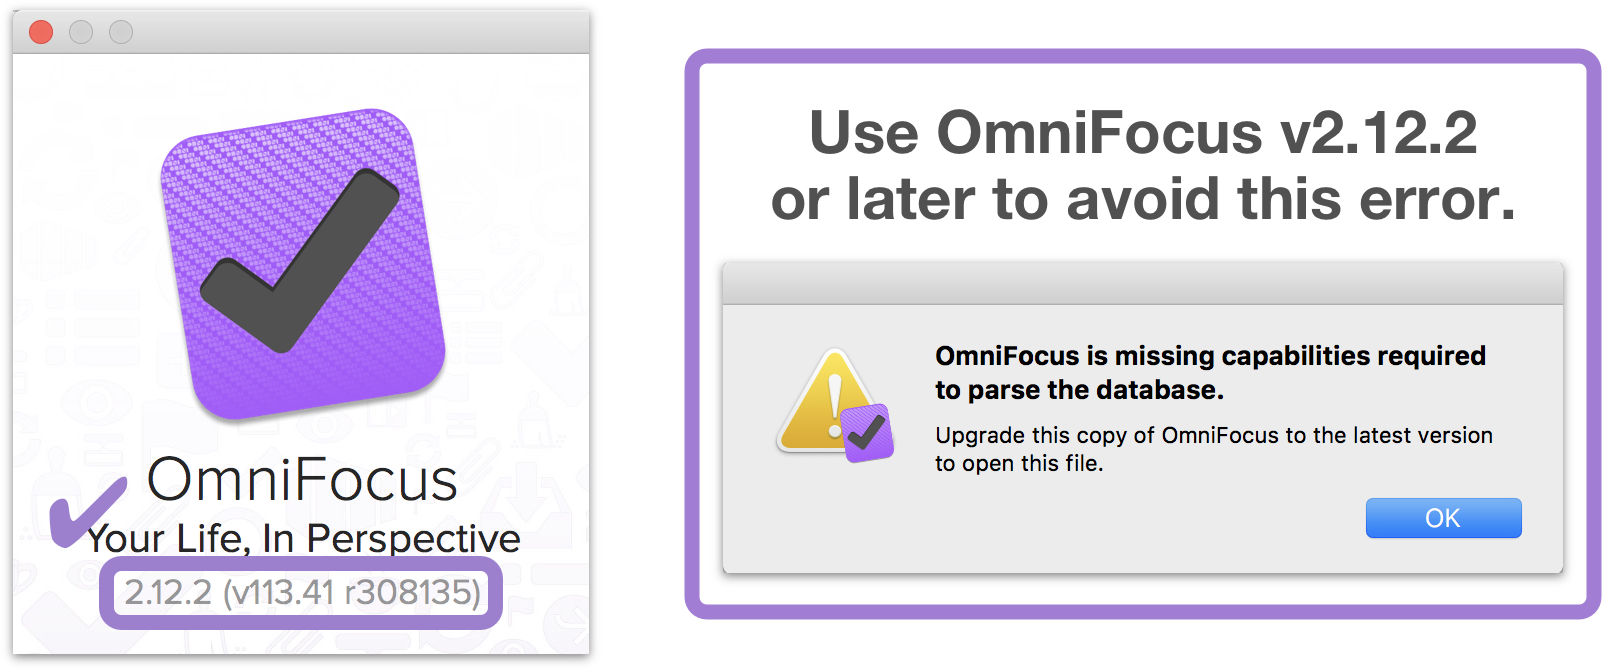 For syncing with OmniFocus 3, use OmniFocus 2.12.2 for Mac or later to avoid an error message.